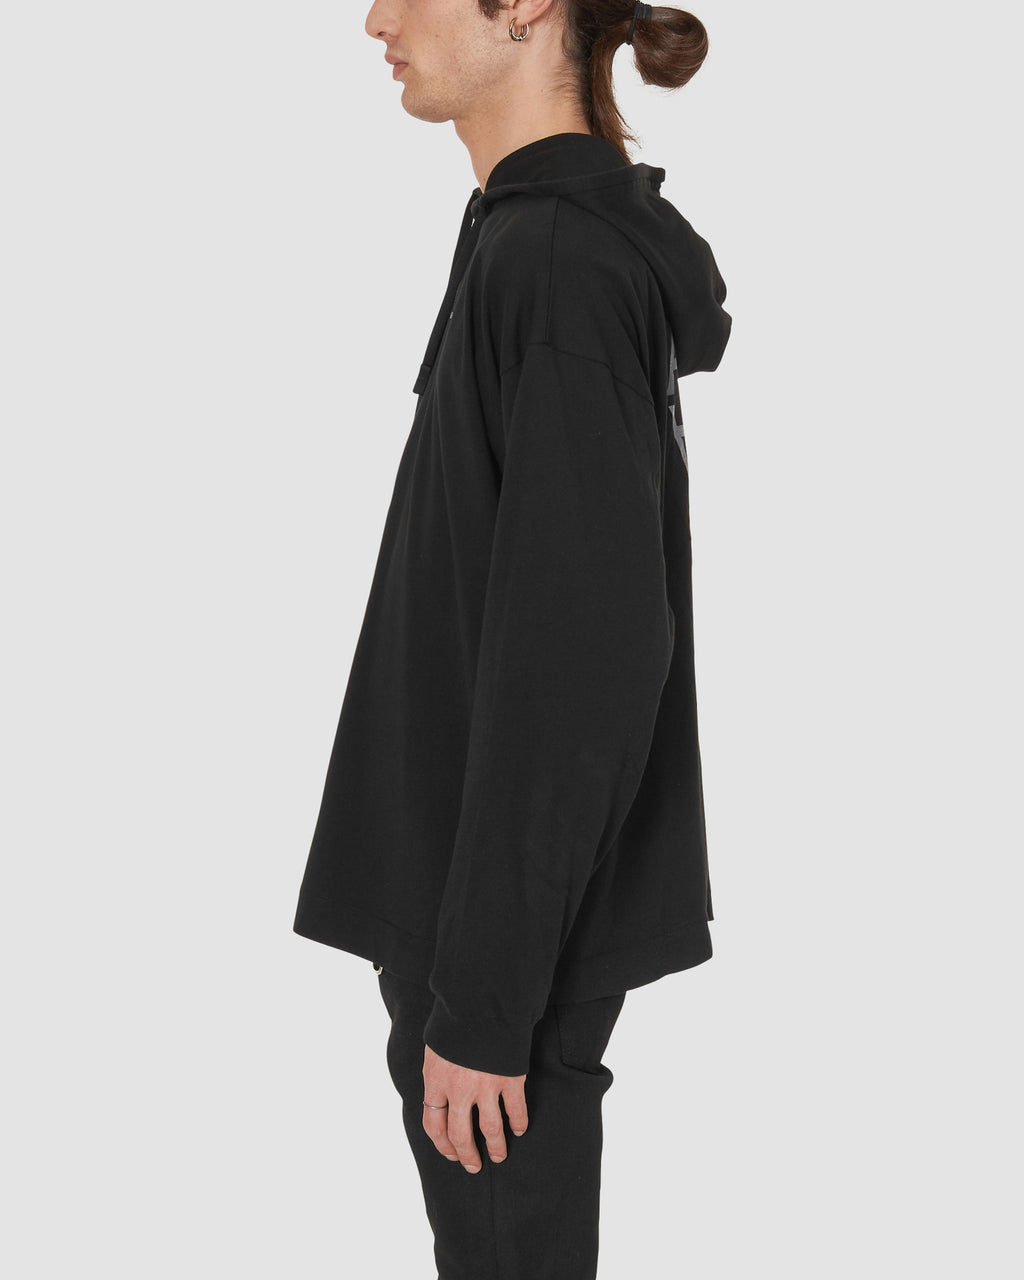 KM20 EXCLUSIVE HOODED TEE